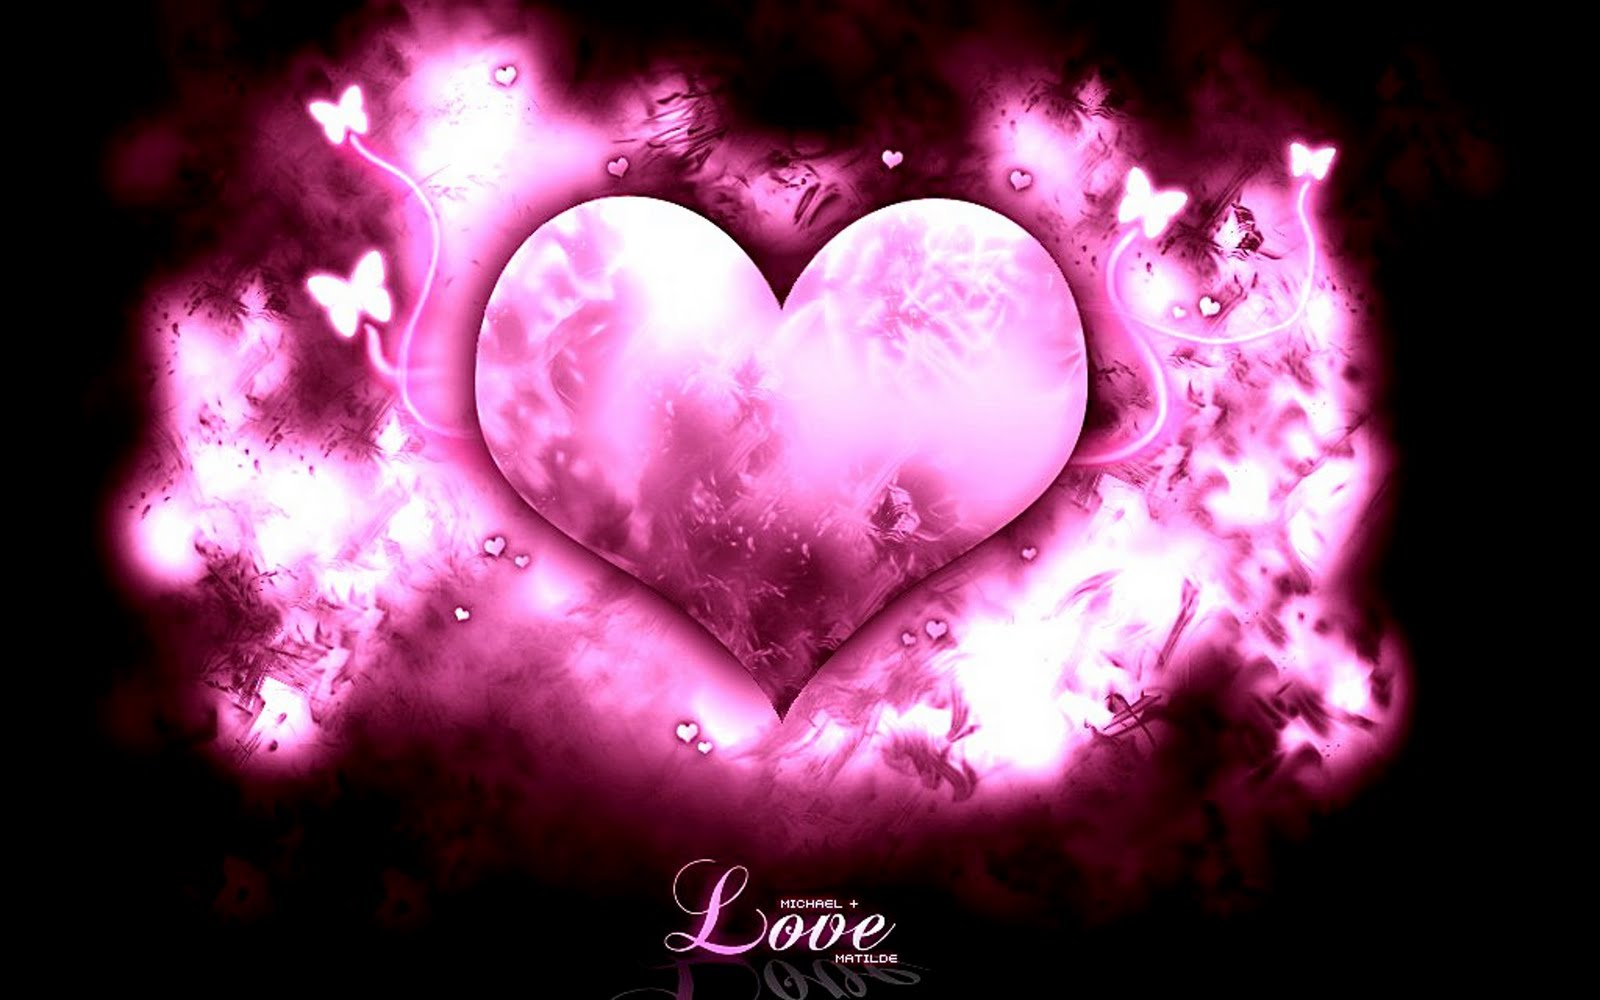 Wallpaper Backgrounds Cute Heart and Love Wallpapers with Different 1600x1000